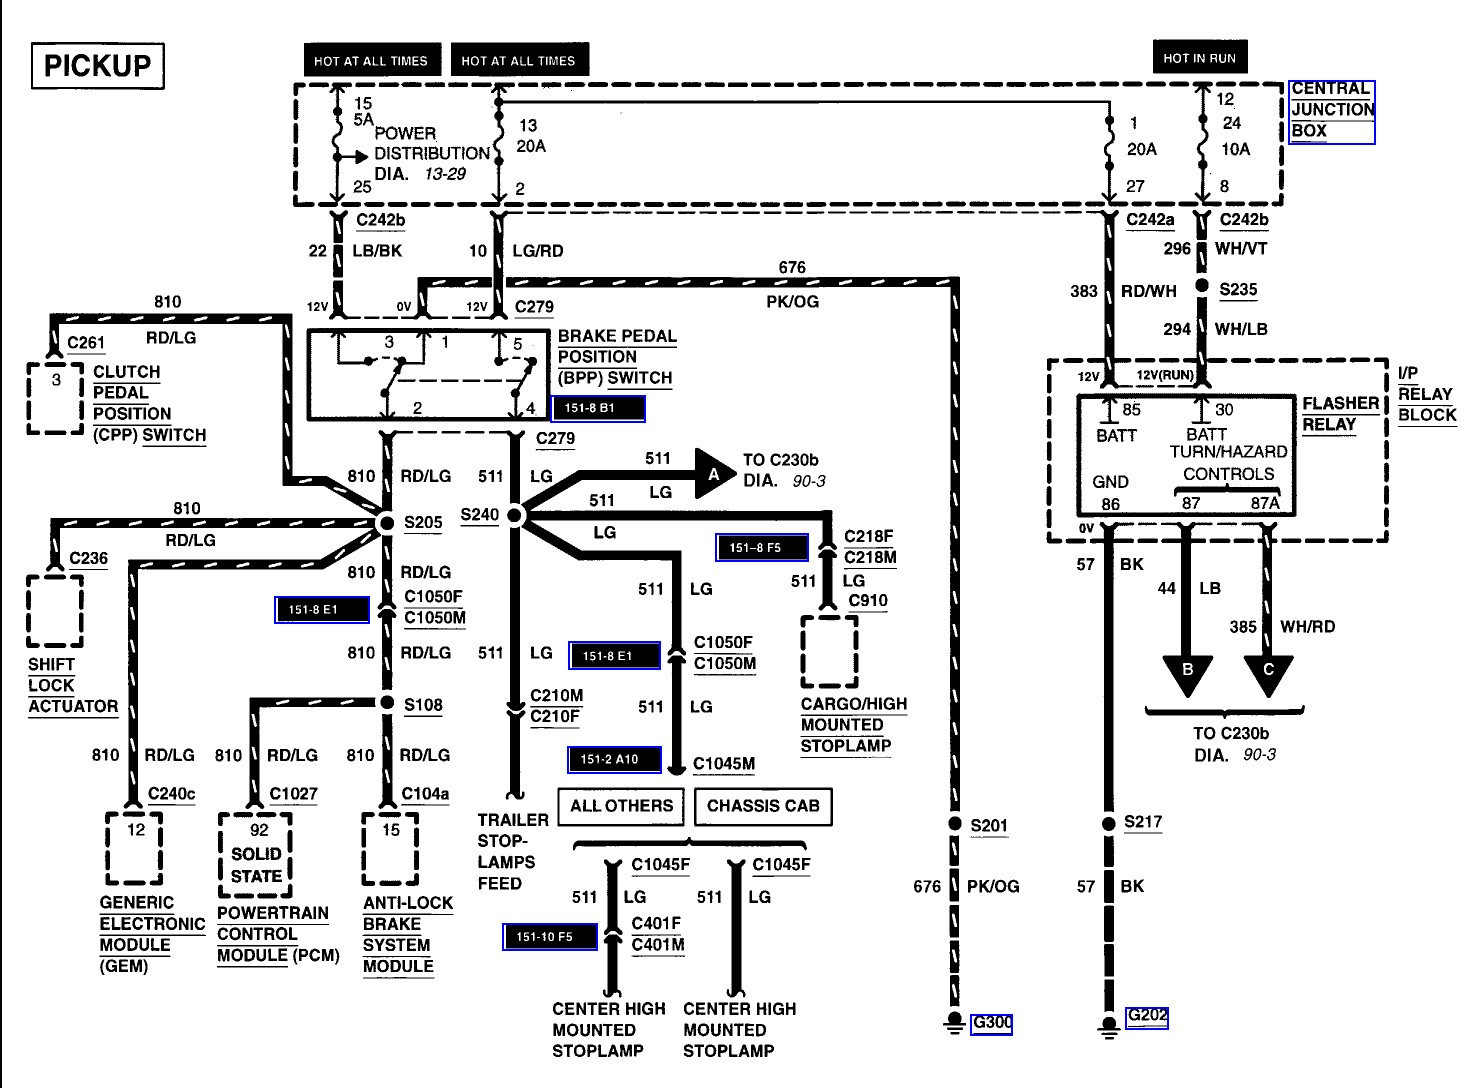 2001 F250 7 3 Wiring Diagram - Tiz.convertigo.de • Ford Wiring Diagram on ford 7.3 wont start, ford 7.3 automatic transmission, ford 7.3 piston, 7.3 idi diagram, ford 7.3 air cleaner, ford 7.3 neutral safety switch, ford 7.3 6 inch lift, ford 7.3 starter relay location, ford 7.3 water pump, ford 7.3 parts, ford 7.3 headlight, ford 7.3 hvac diagram, ford 7.3 exhaust, ford 7.3 clutch, ford 7.3 oil cooler, ford 7.3 no oil pressure, powerstroke engine diagram, ford 7.3 firing order, ford 7.3 oil system diagram, ford 7.3 chassis,